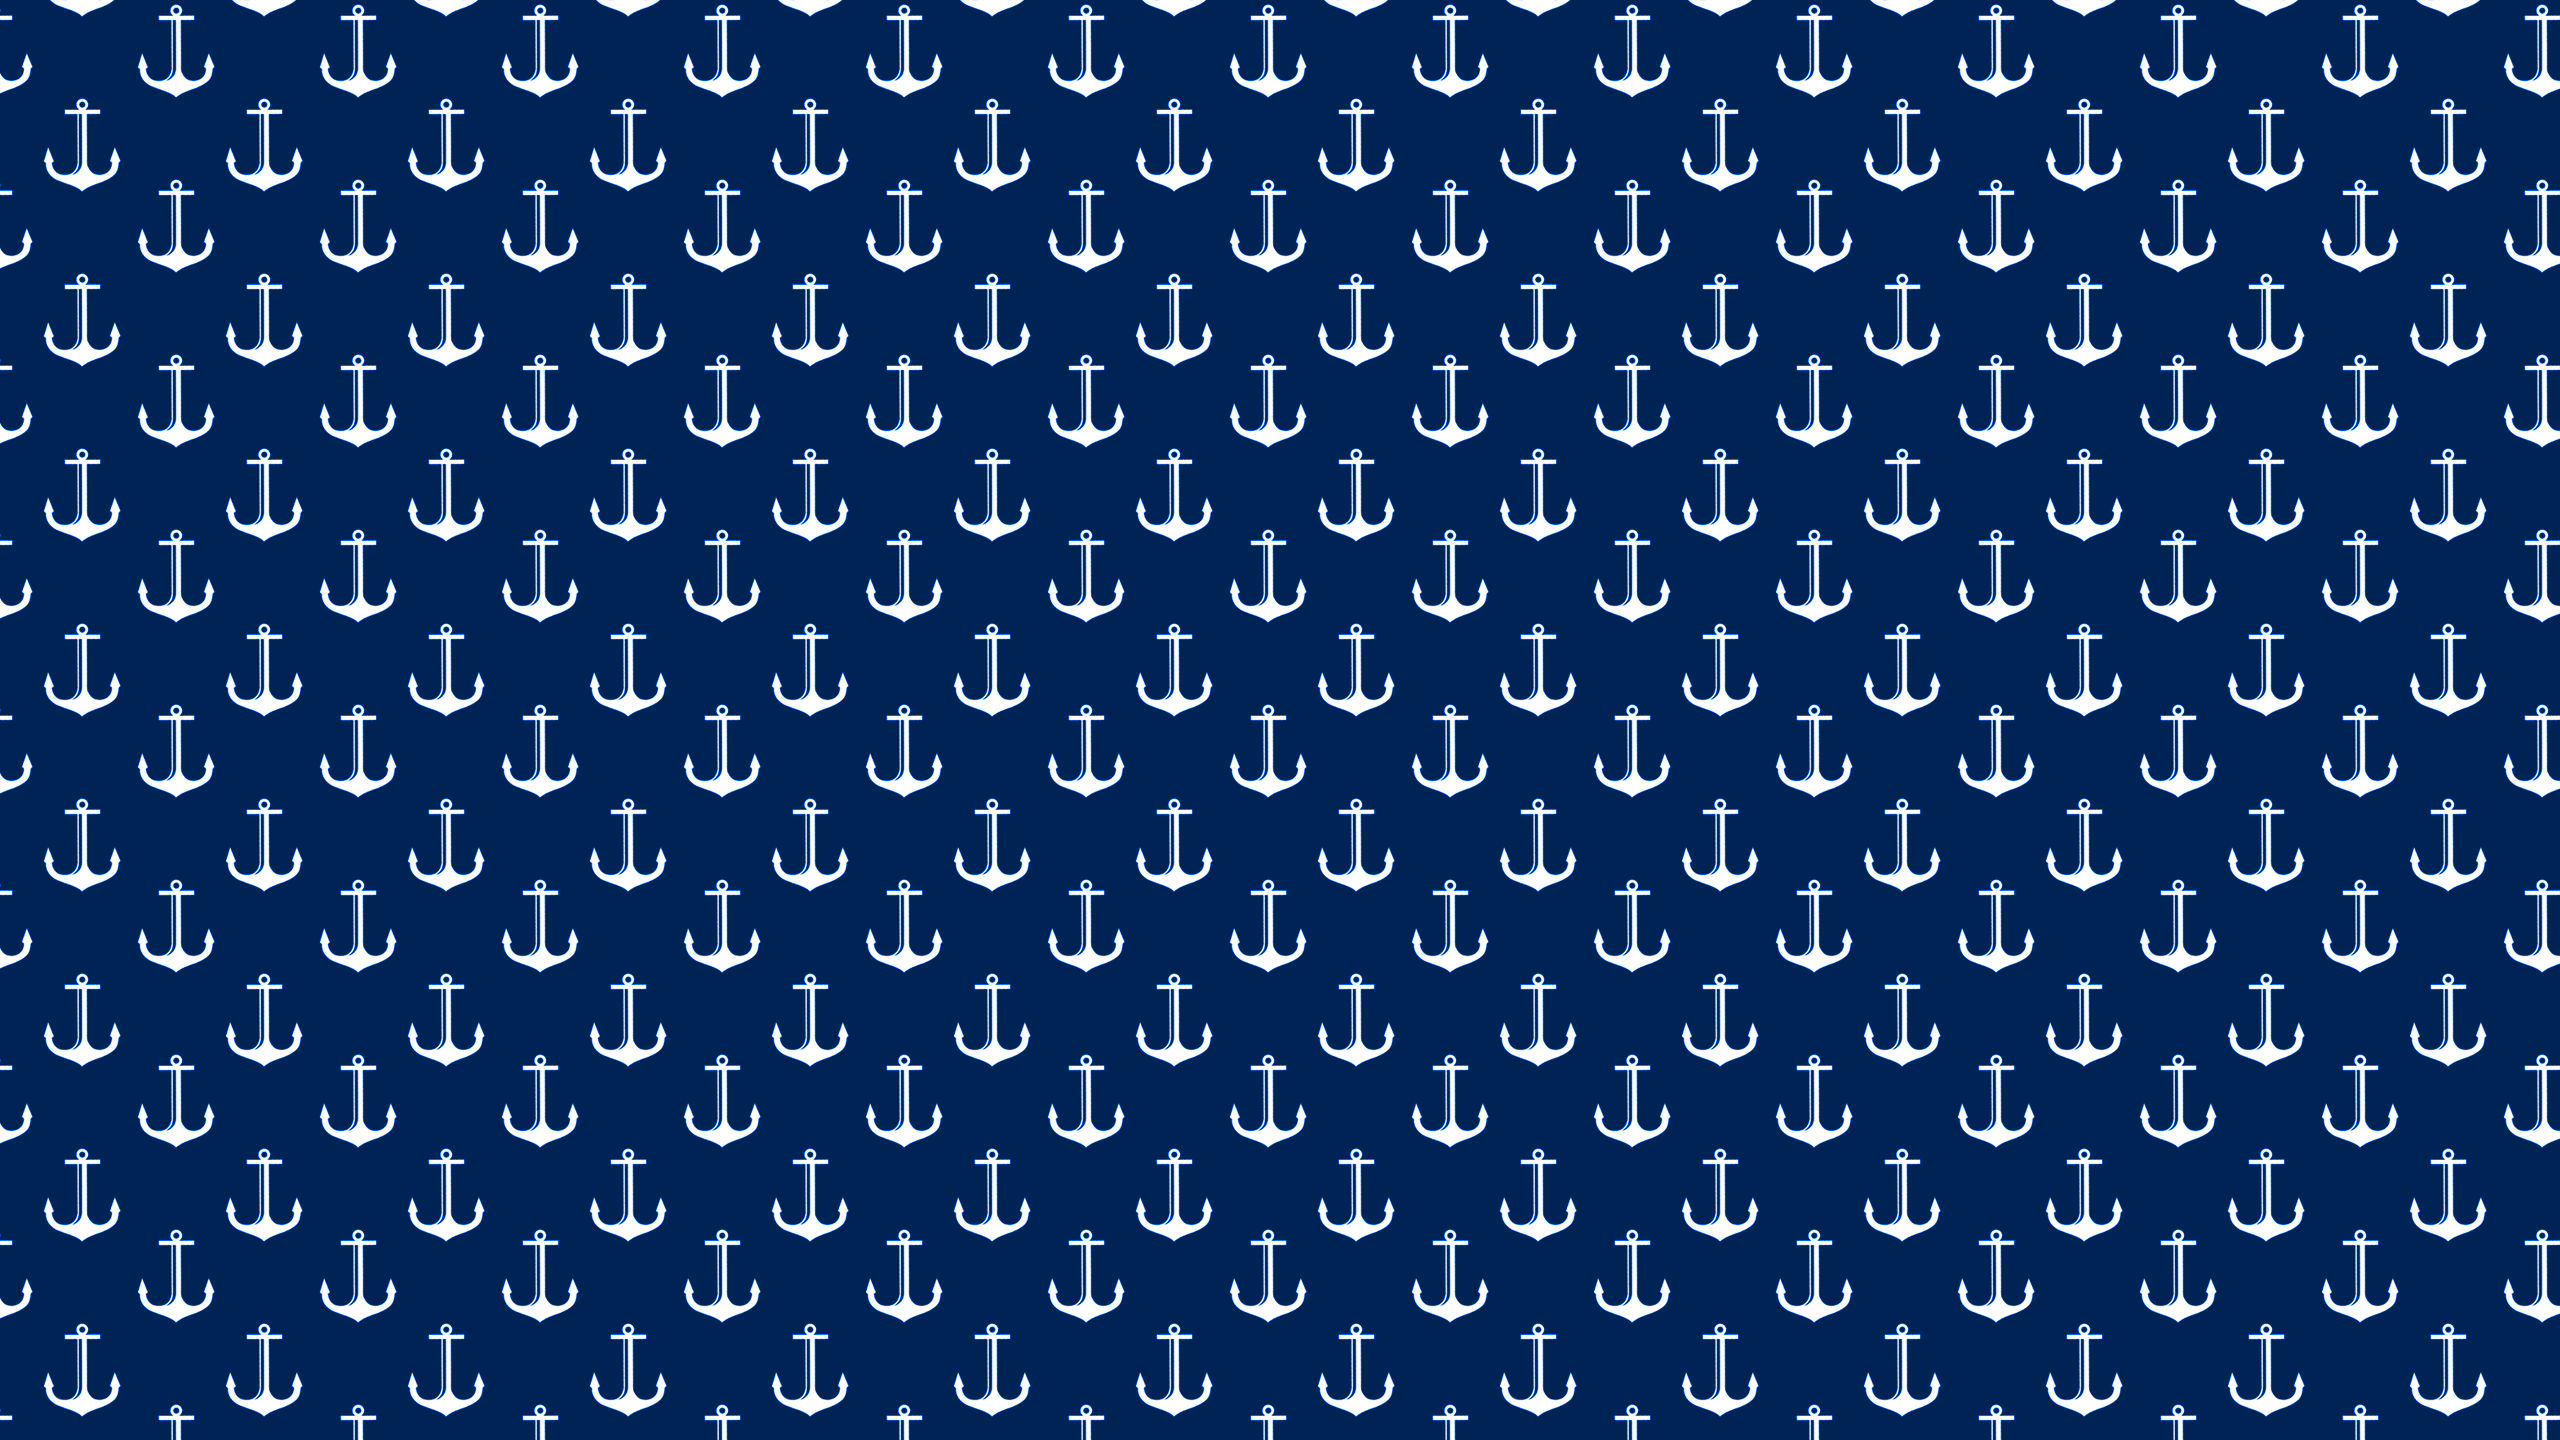 Navy blue chevron wallpaper wallpapersafari for Navy blue wallpaper